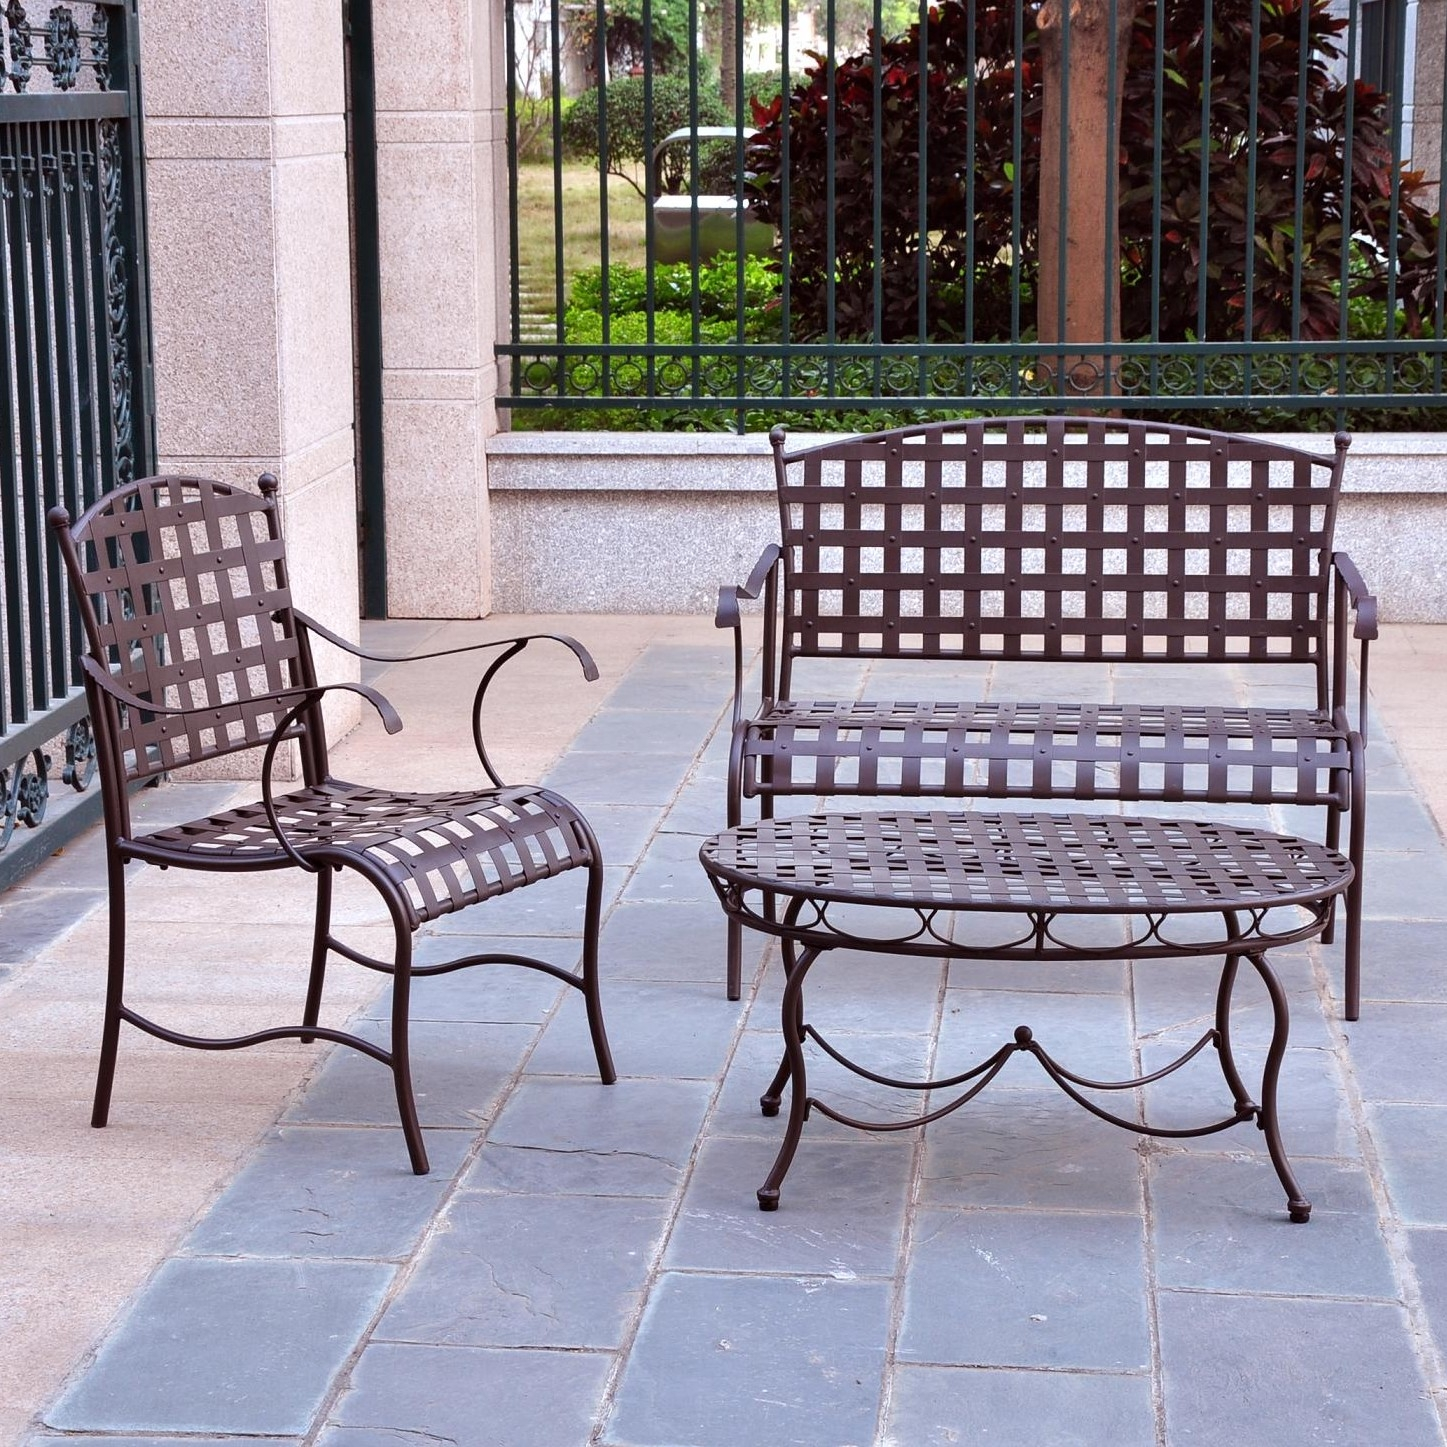 3-Piece Wrought Iron Patio Furniture Lounge Seating Group Set, IC3PF30429 :  This 3-Piece Wrought Iron Patio Furniture Lounge Seating Group Set would be a great addition to your home. Set includes a loveseat, a deep seat iron chair and a low profile table. Made from premium double powder coated wrought iron; All weather resistant; UV light fading protection; Distressed brown matte finish; Woven: Yes; Frame Finish: Brown; Powder Coated Finish: Yes; UV Resistant: Yes; Rust Resistant: Yes; Cushions Available: No; Cushions Included: No; Arms Included: Yes; Seating Design: Lounge; Style: Traditional.